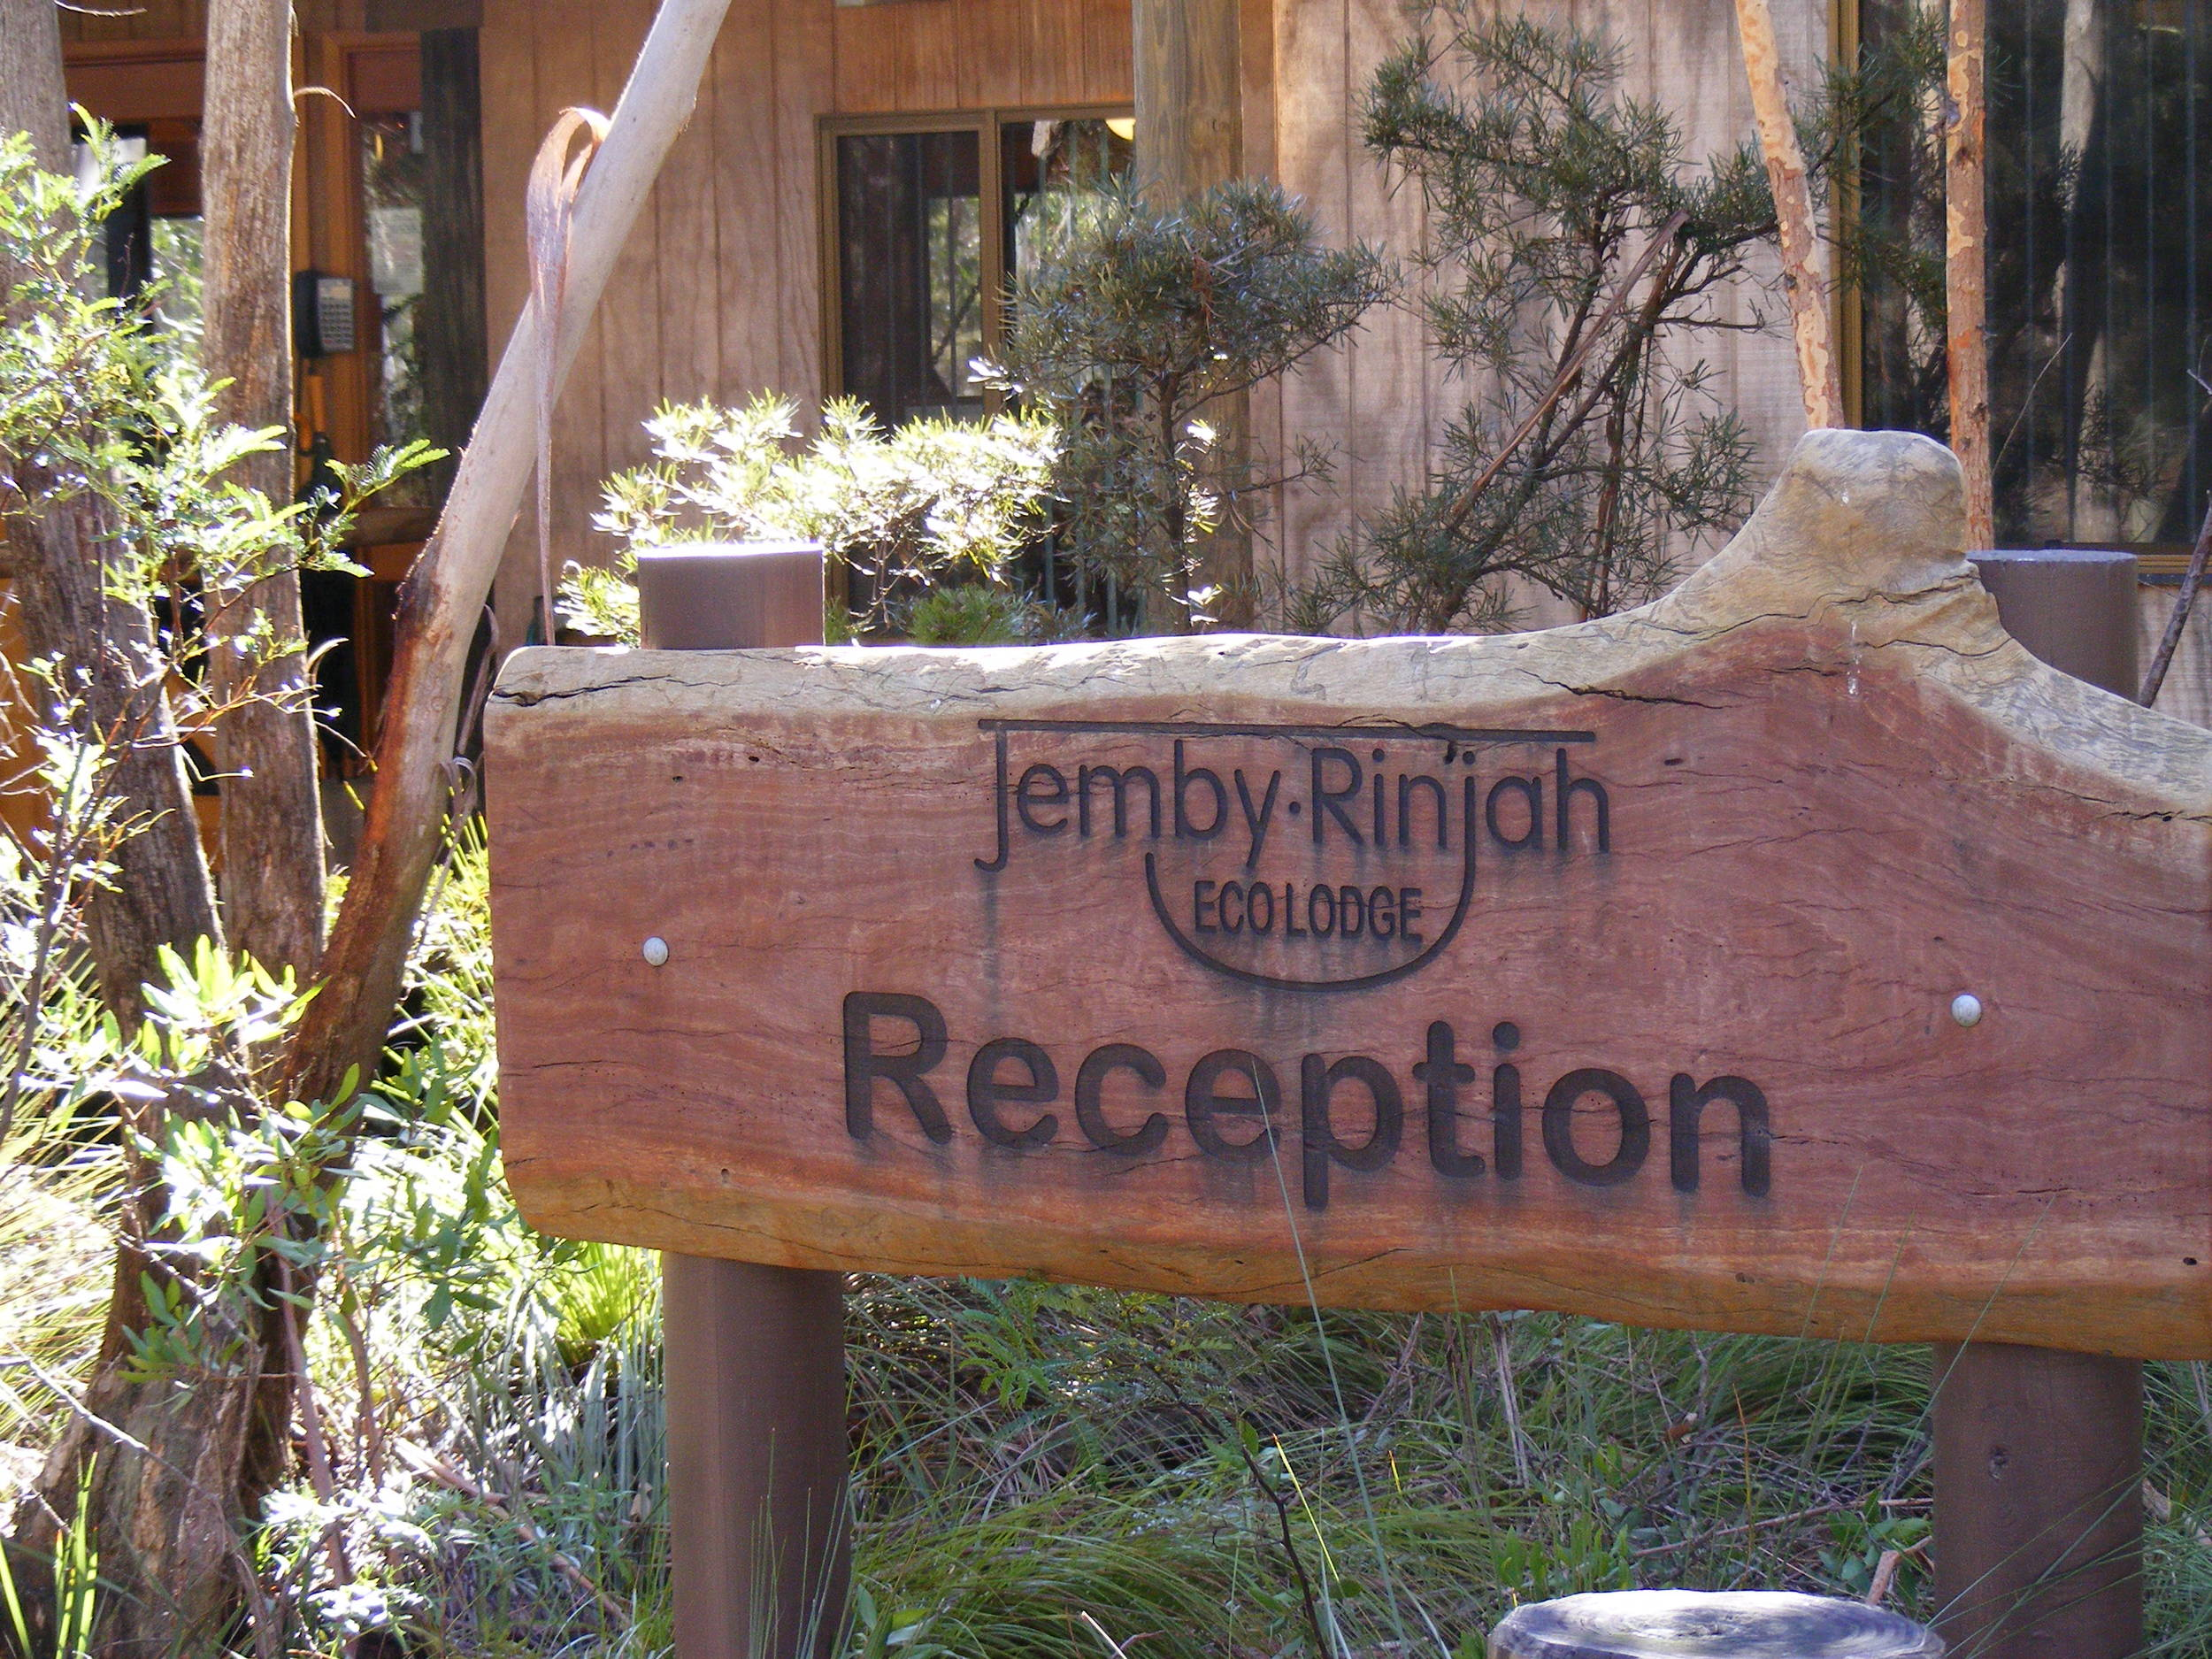 Named after the famous Jemby Rinjah parrot.